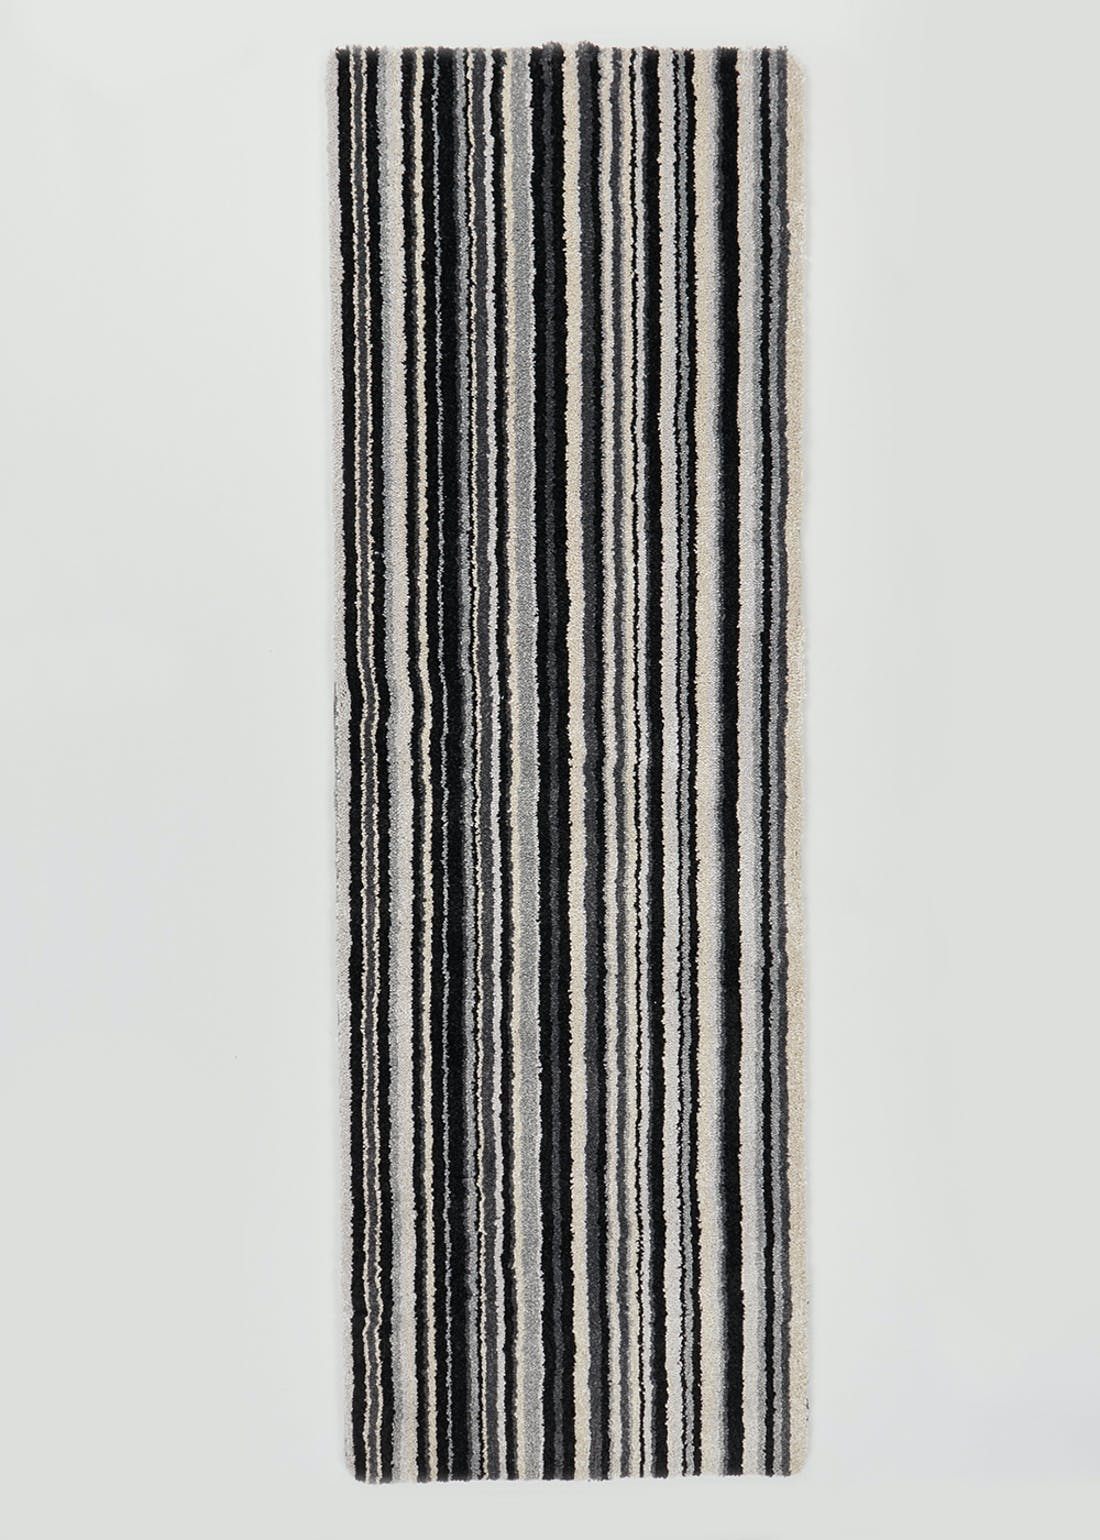 Striped Muddle Mat (150 x 50cm)